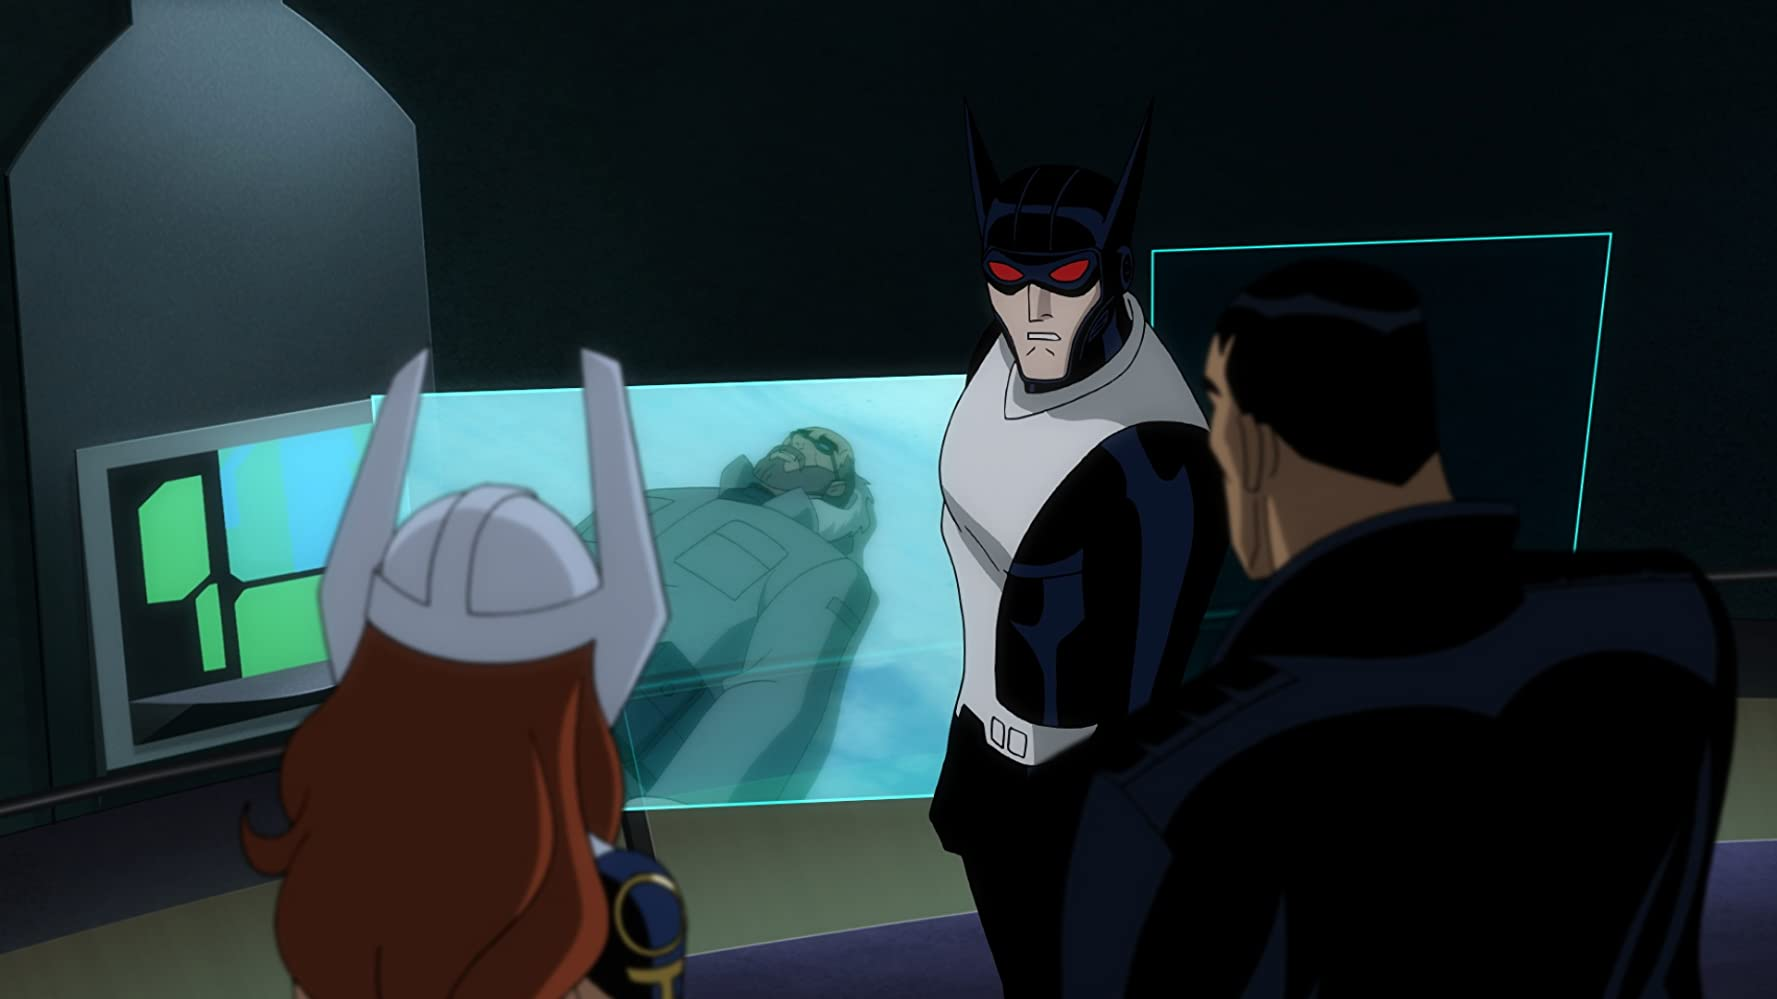 Liga de la Justicia: Dioses y Monstruos (Justice League: Gods and Monsters)